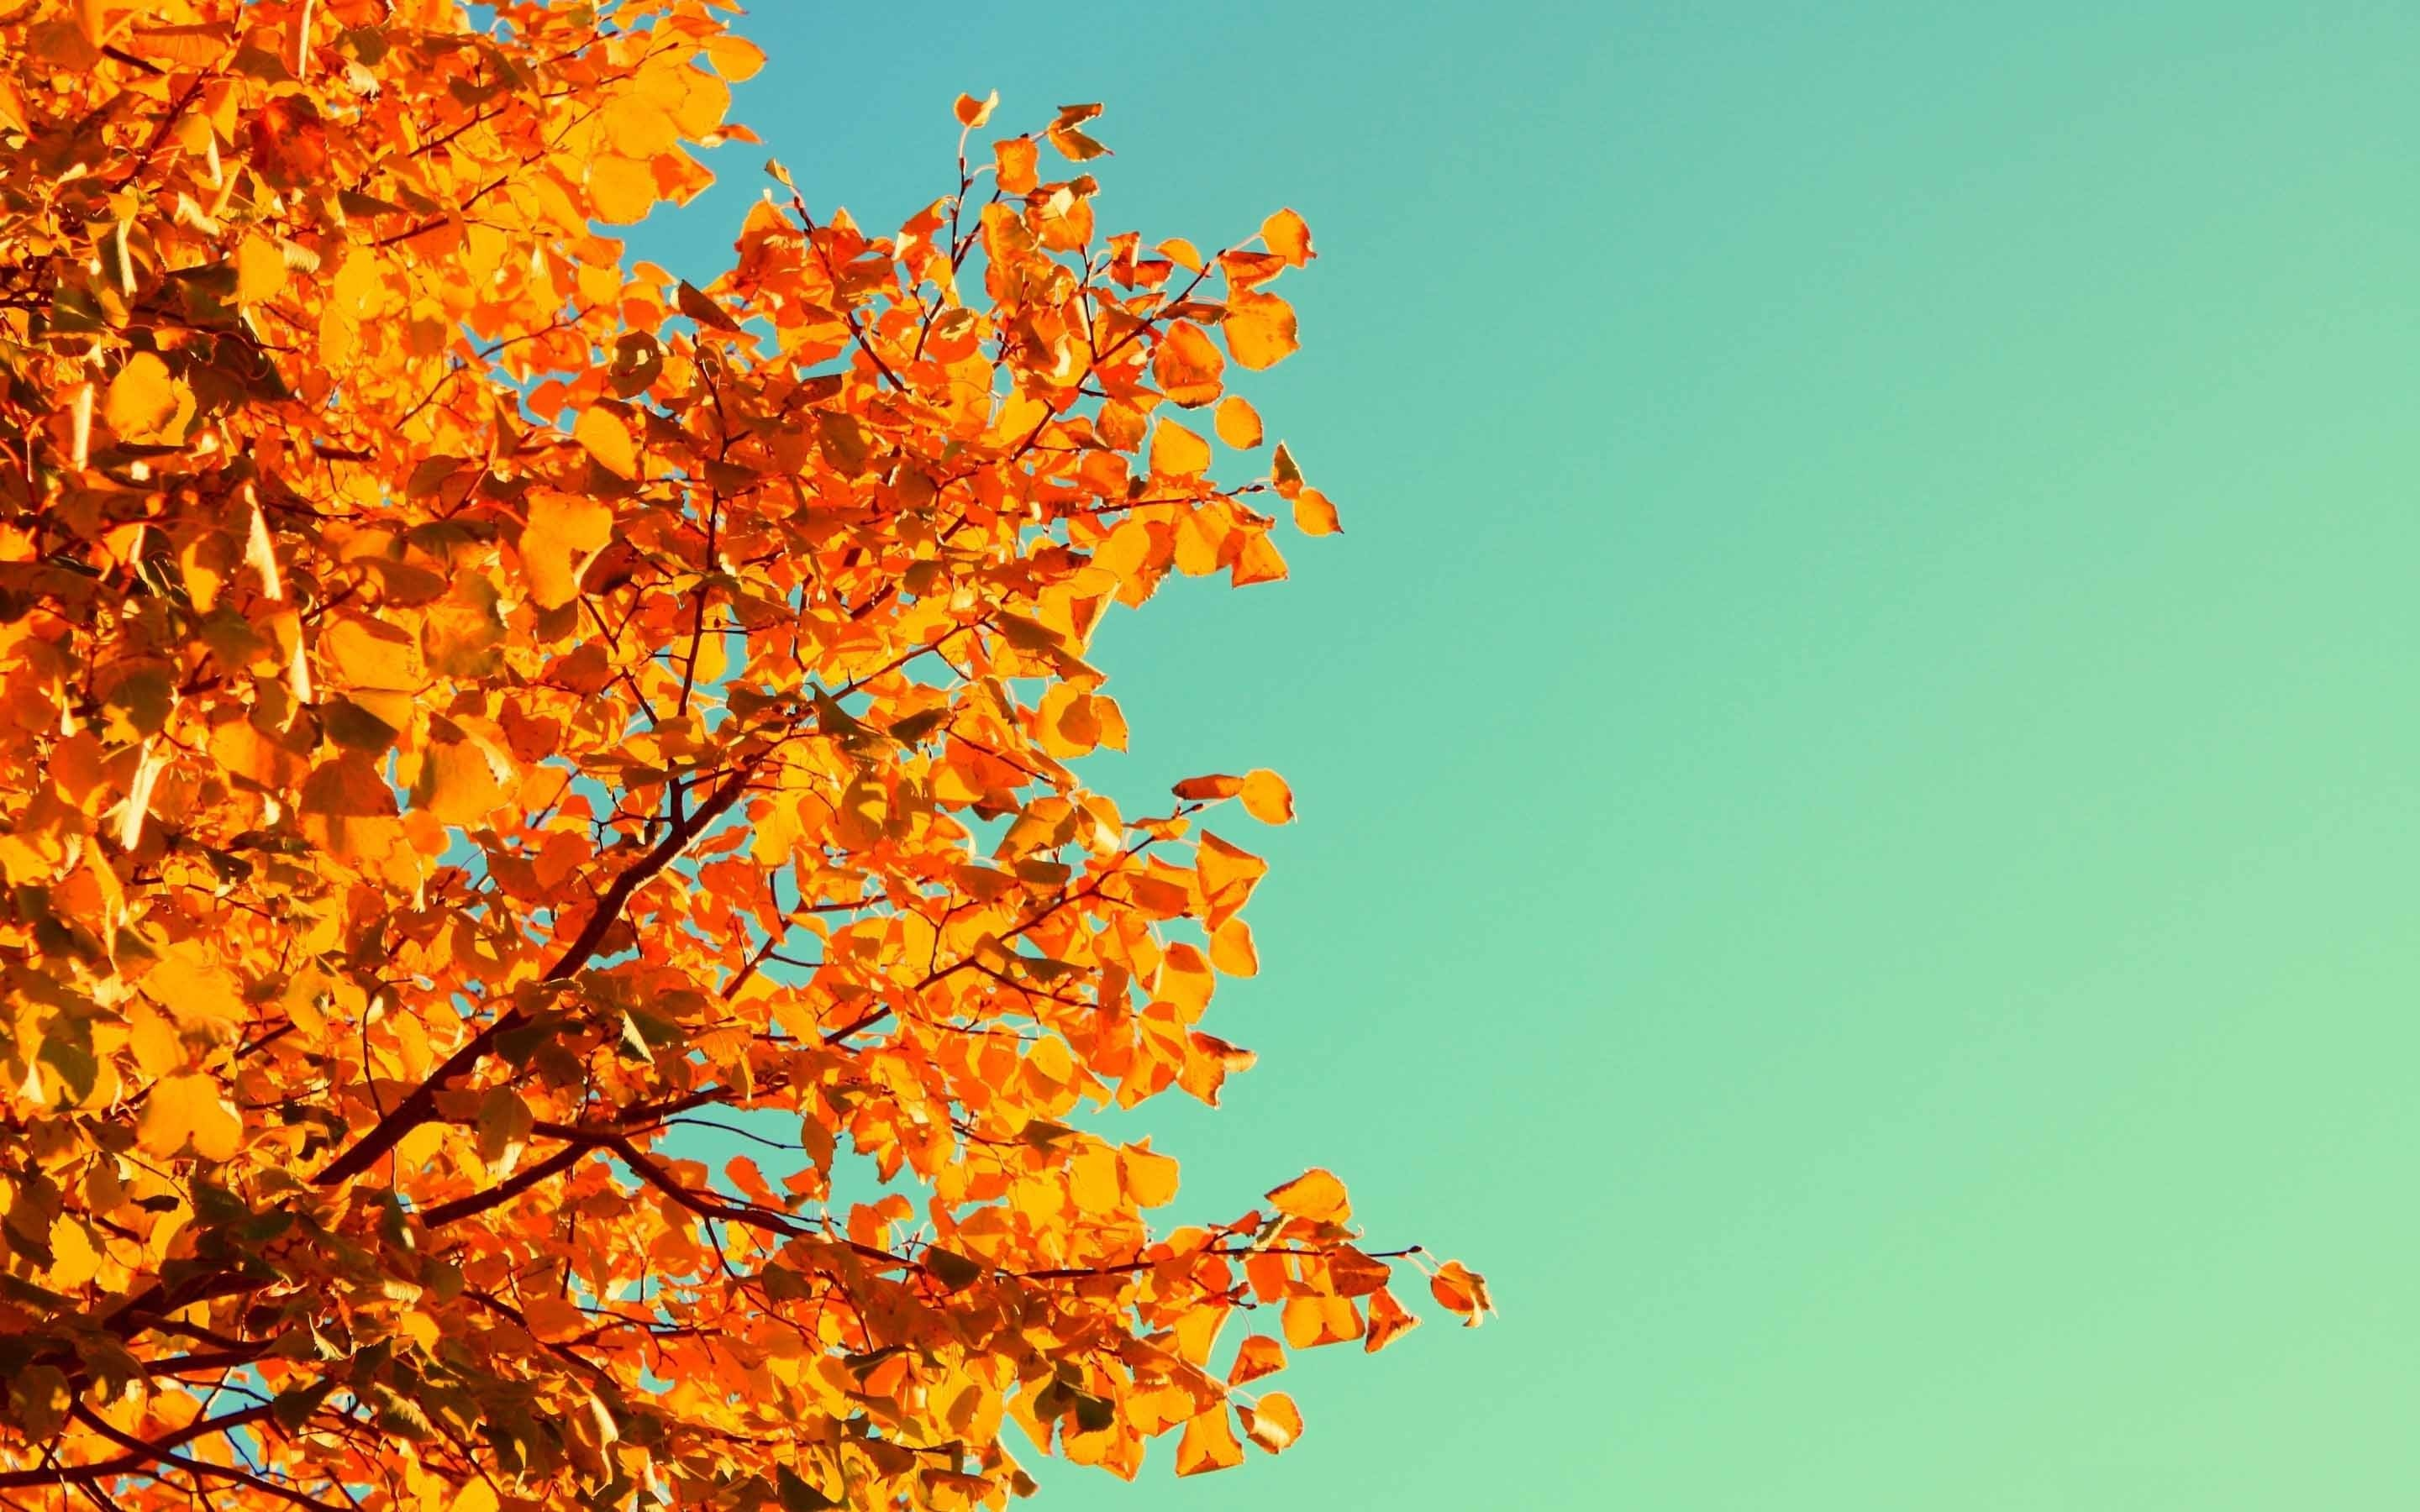 Fall desktop wallpaper ·① Download free awesome High Resolution